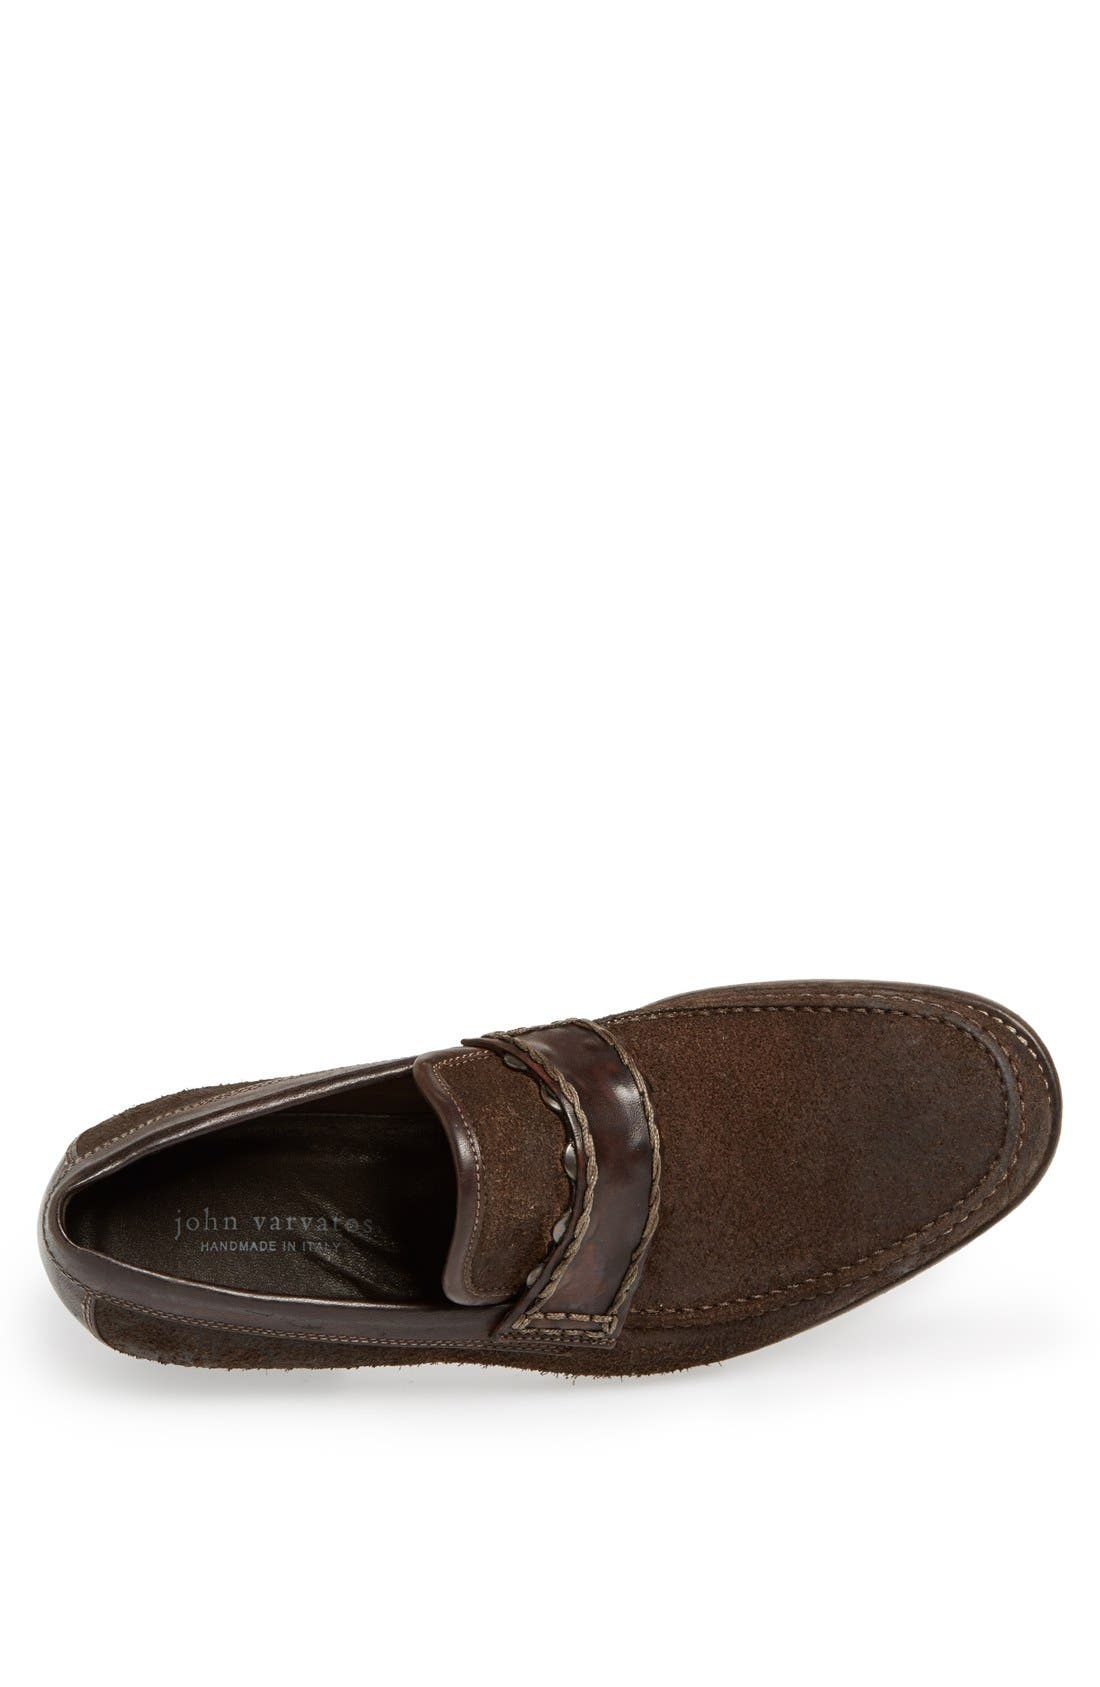 Alternate Image 3  - John Varvatos Collection 'Ludwig Signature' Penny Loafer